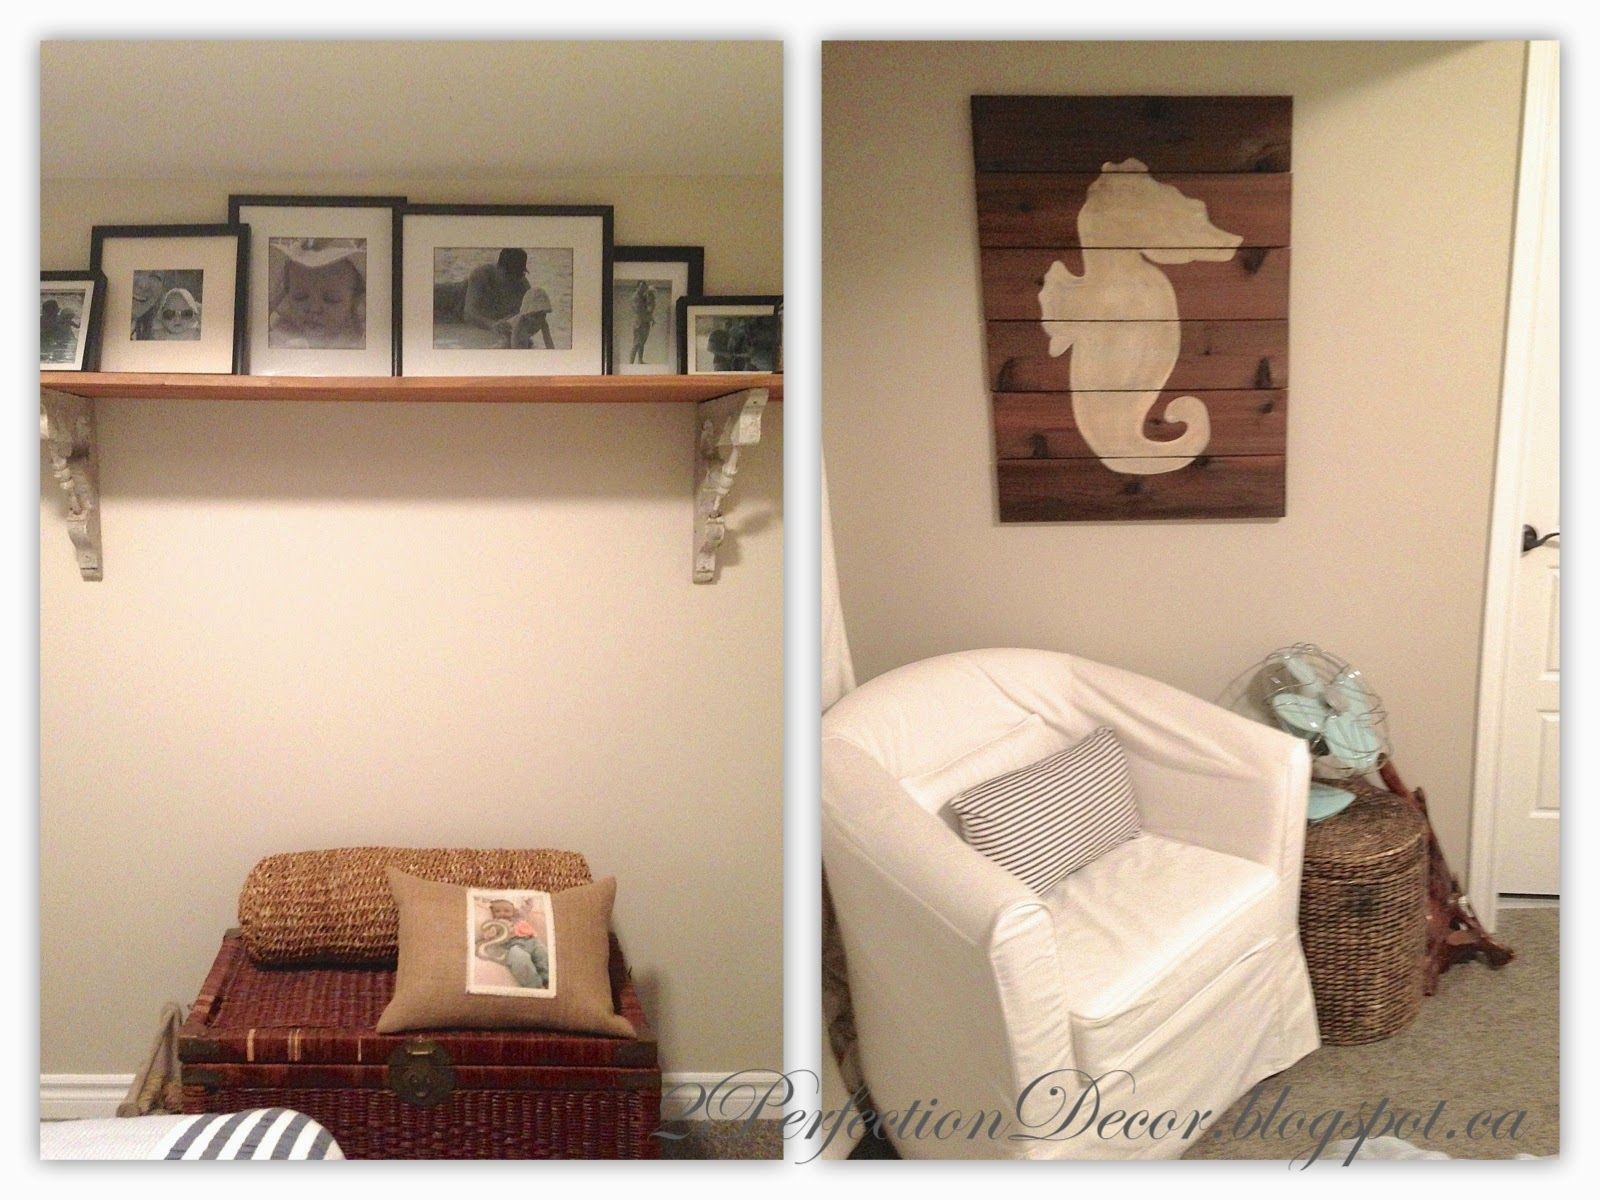 2Perfection Decor: Our Basement Guest Bedroom Reveal